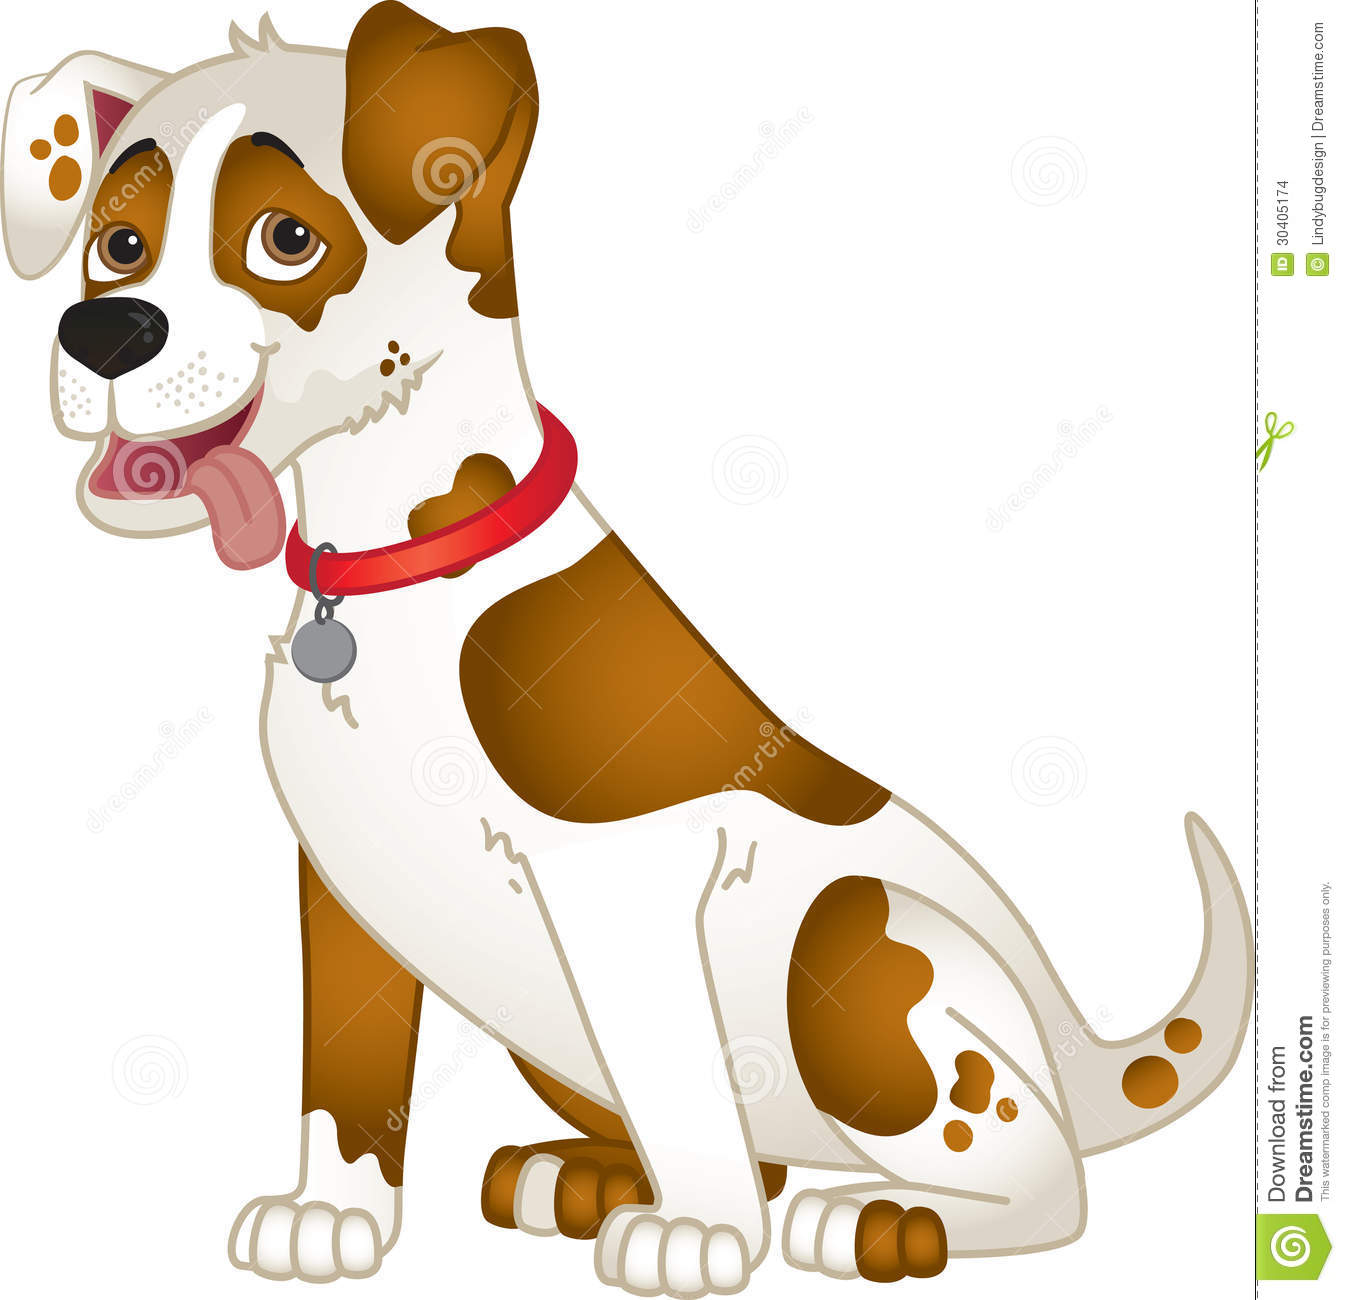 cute cartoon dog stock images - image: 30405174